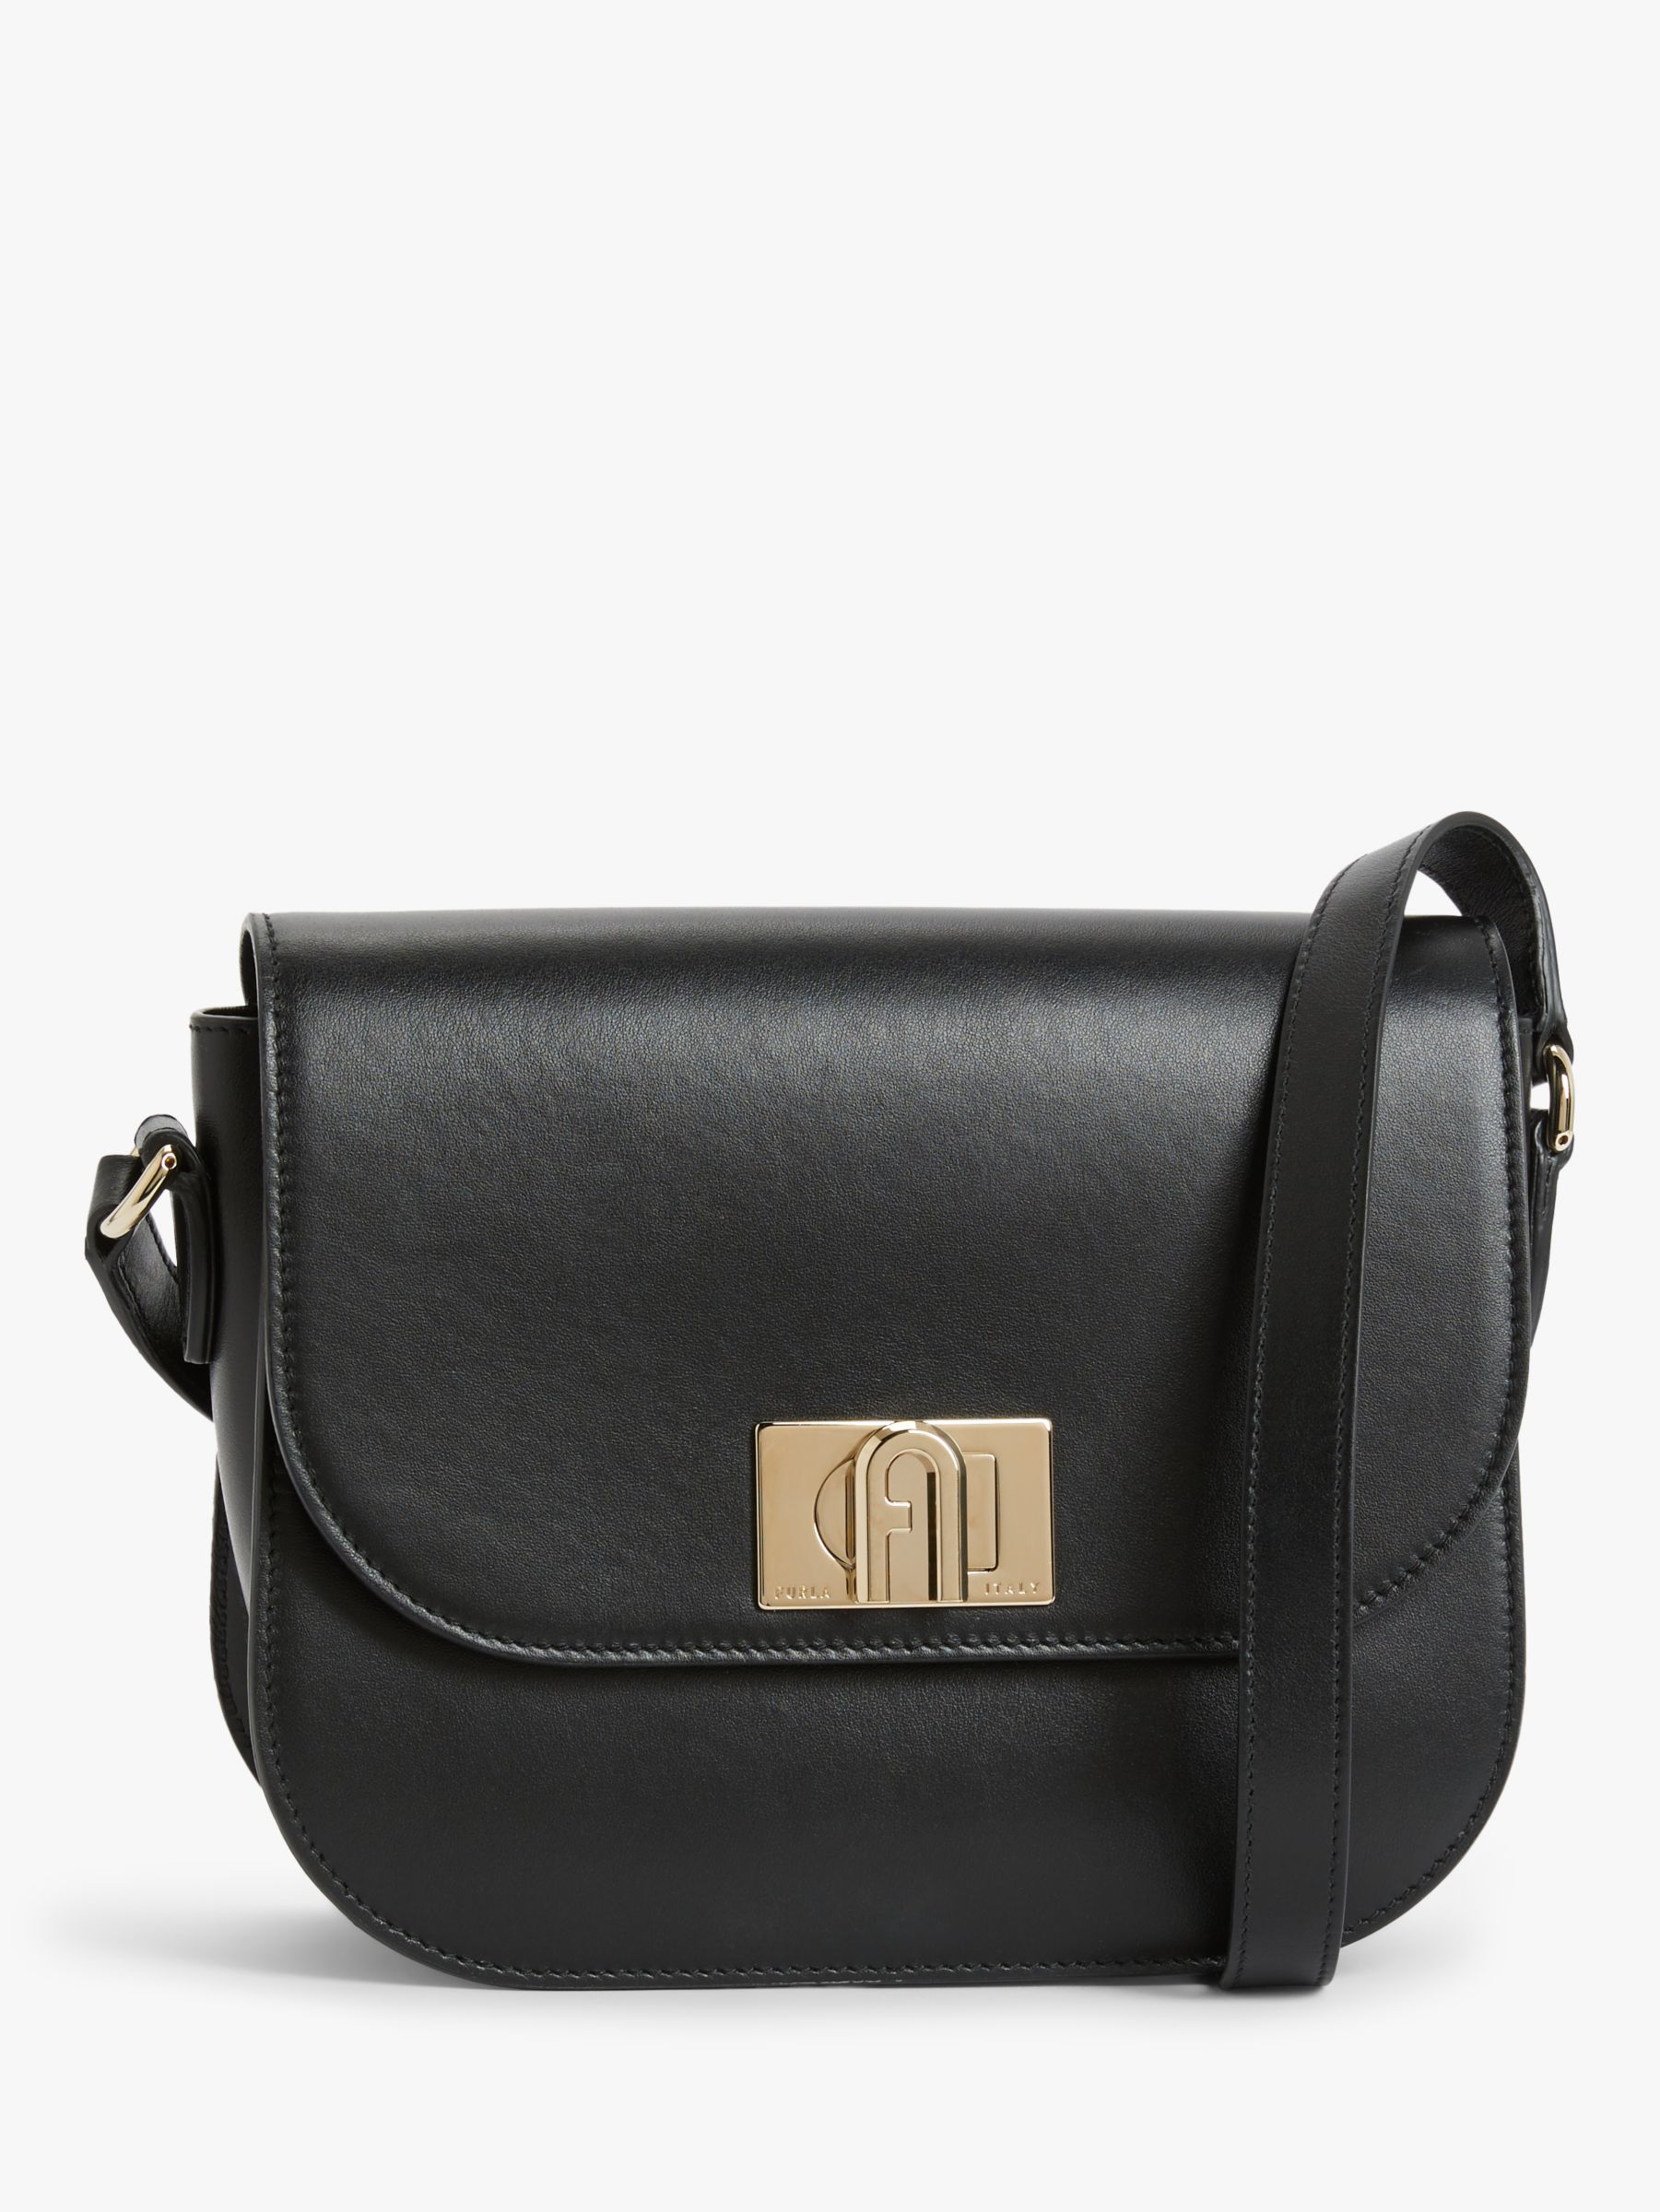 Furla Furla 1927 Leather Mini Cross Body Bag, Black